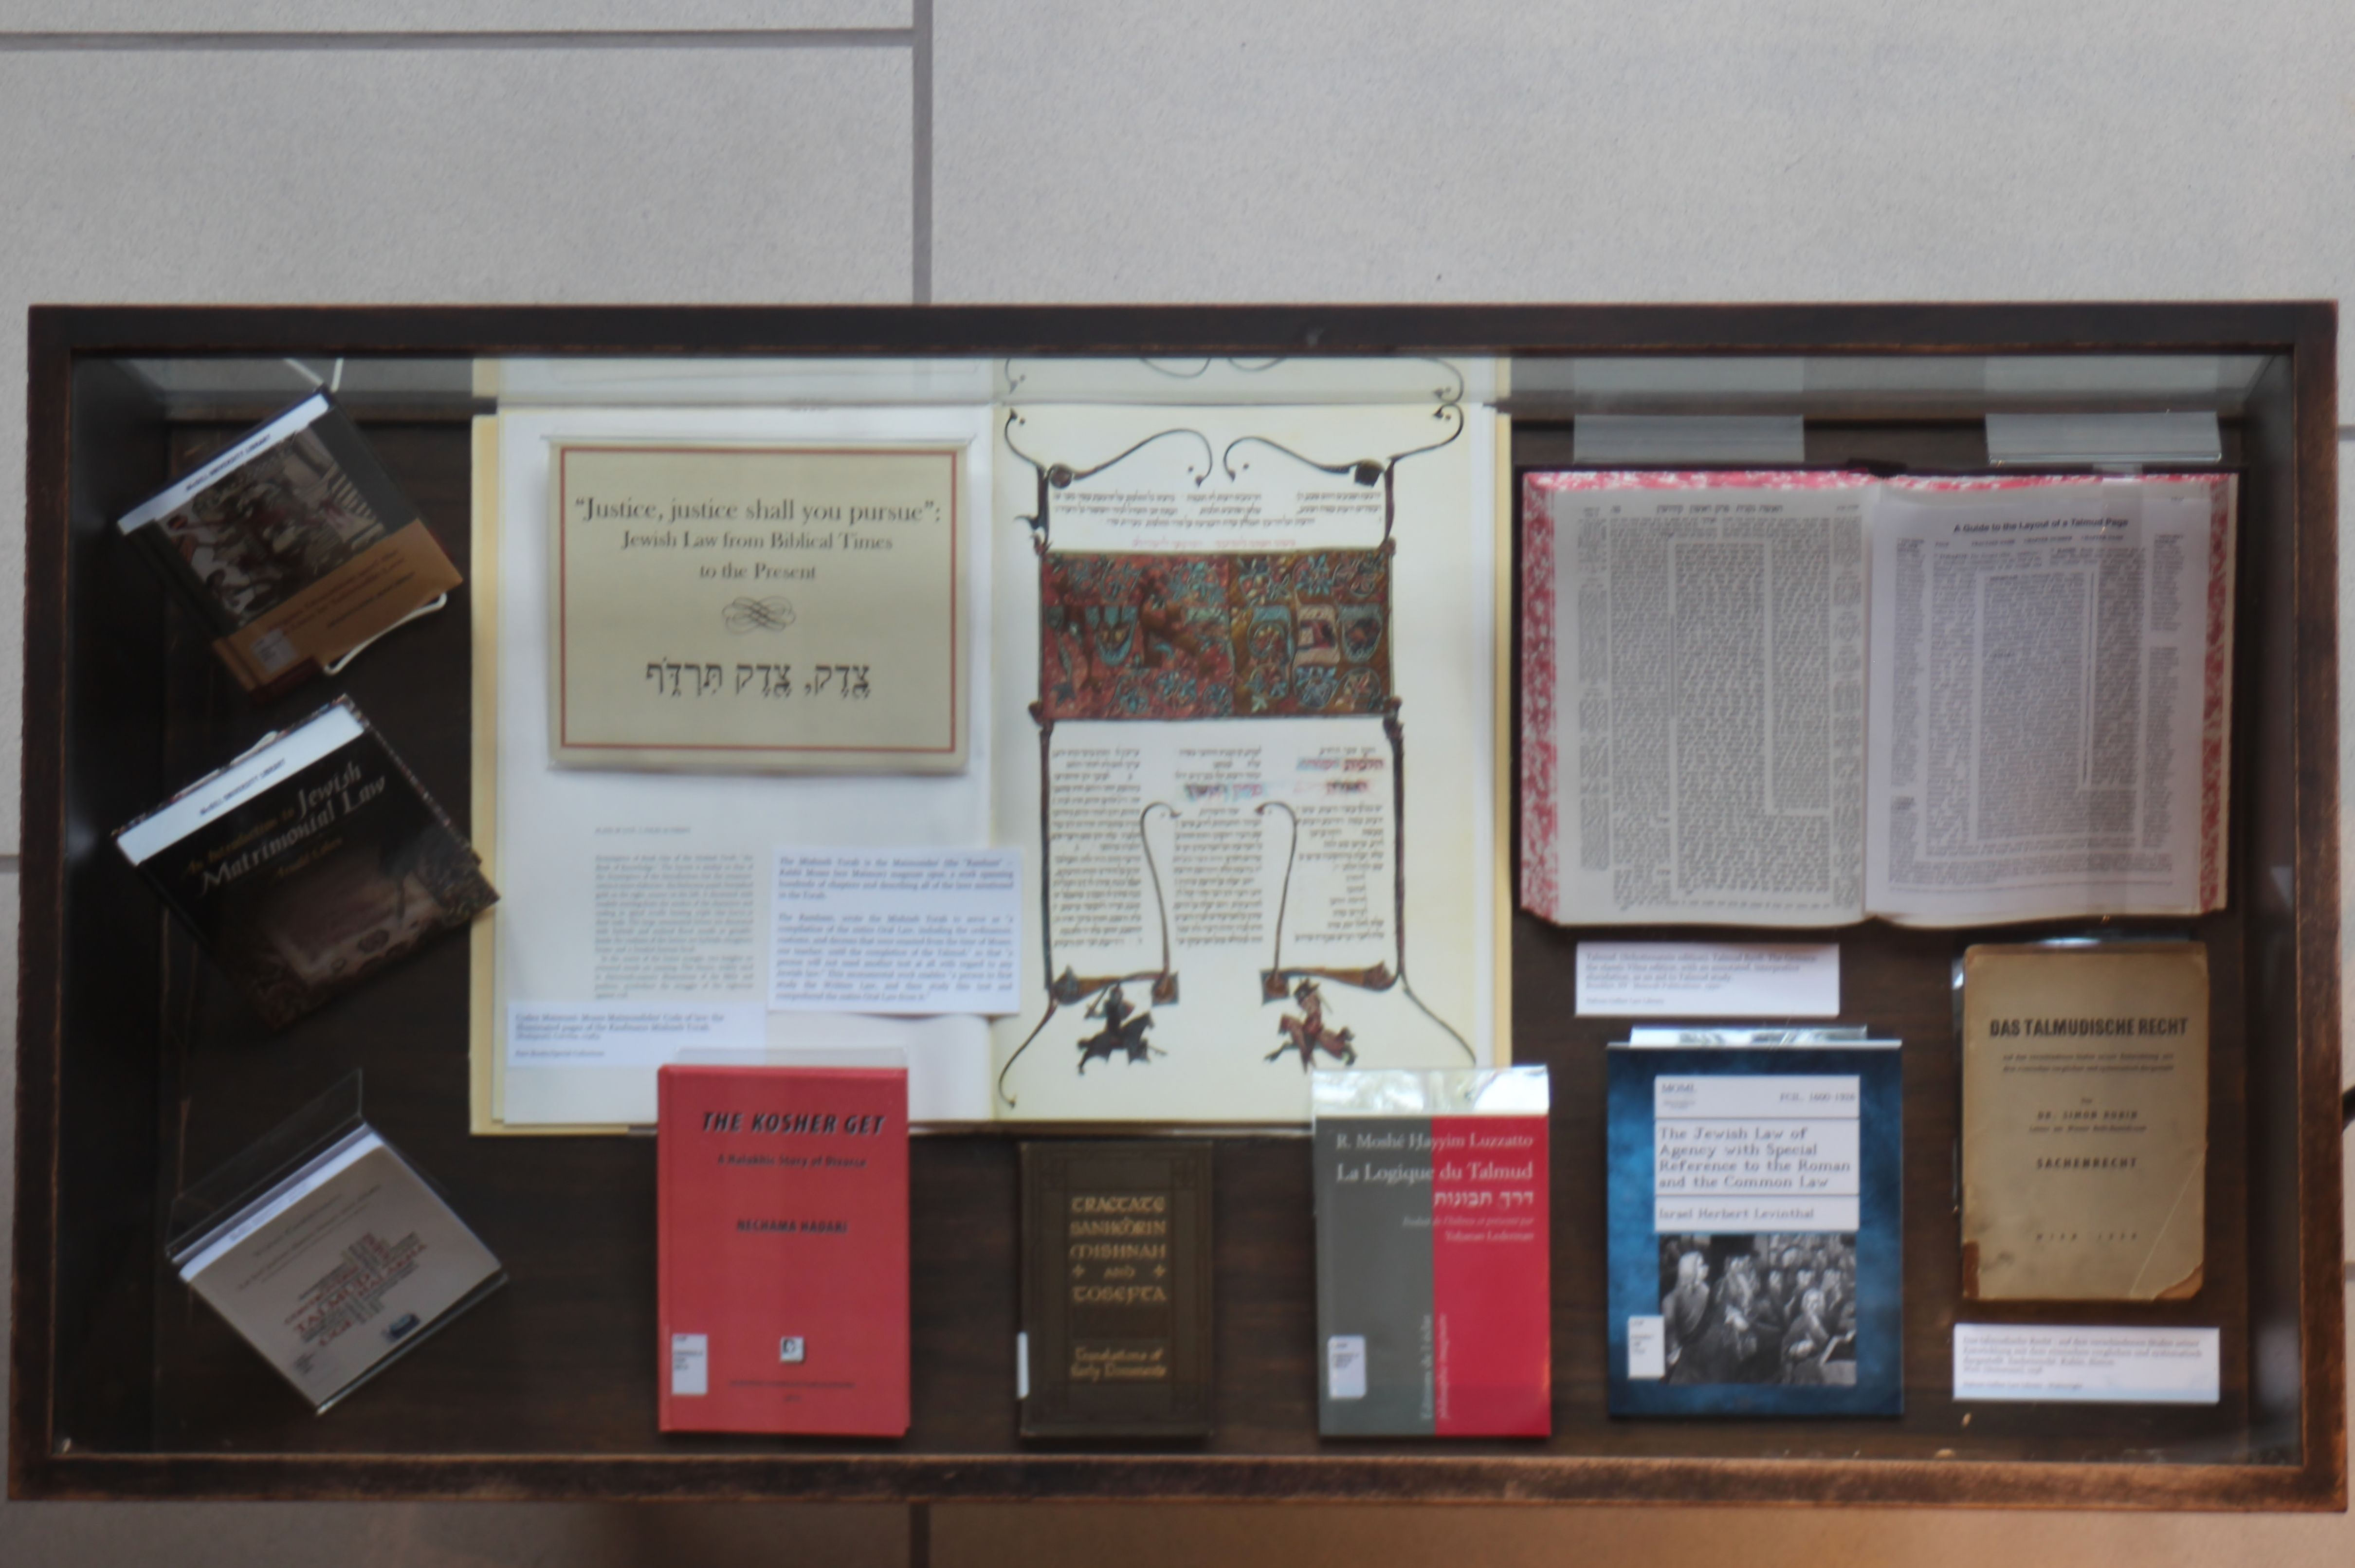 8 Exhibition Justice Justice Shall You Pursue Jewish Law From Biblical Times To The Present Ideas Biblical Blog Legal Exhibition